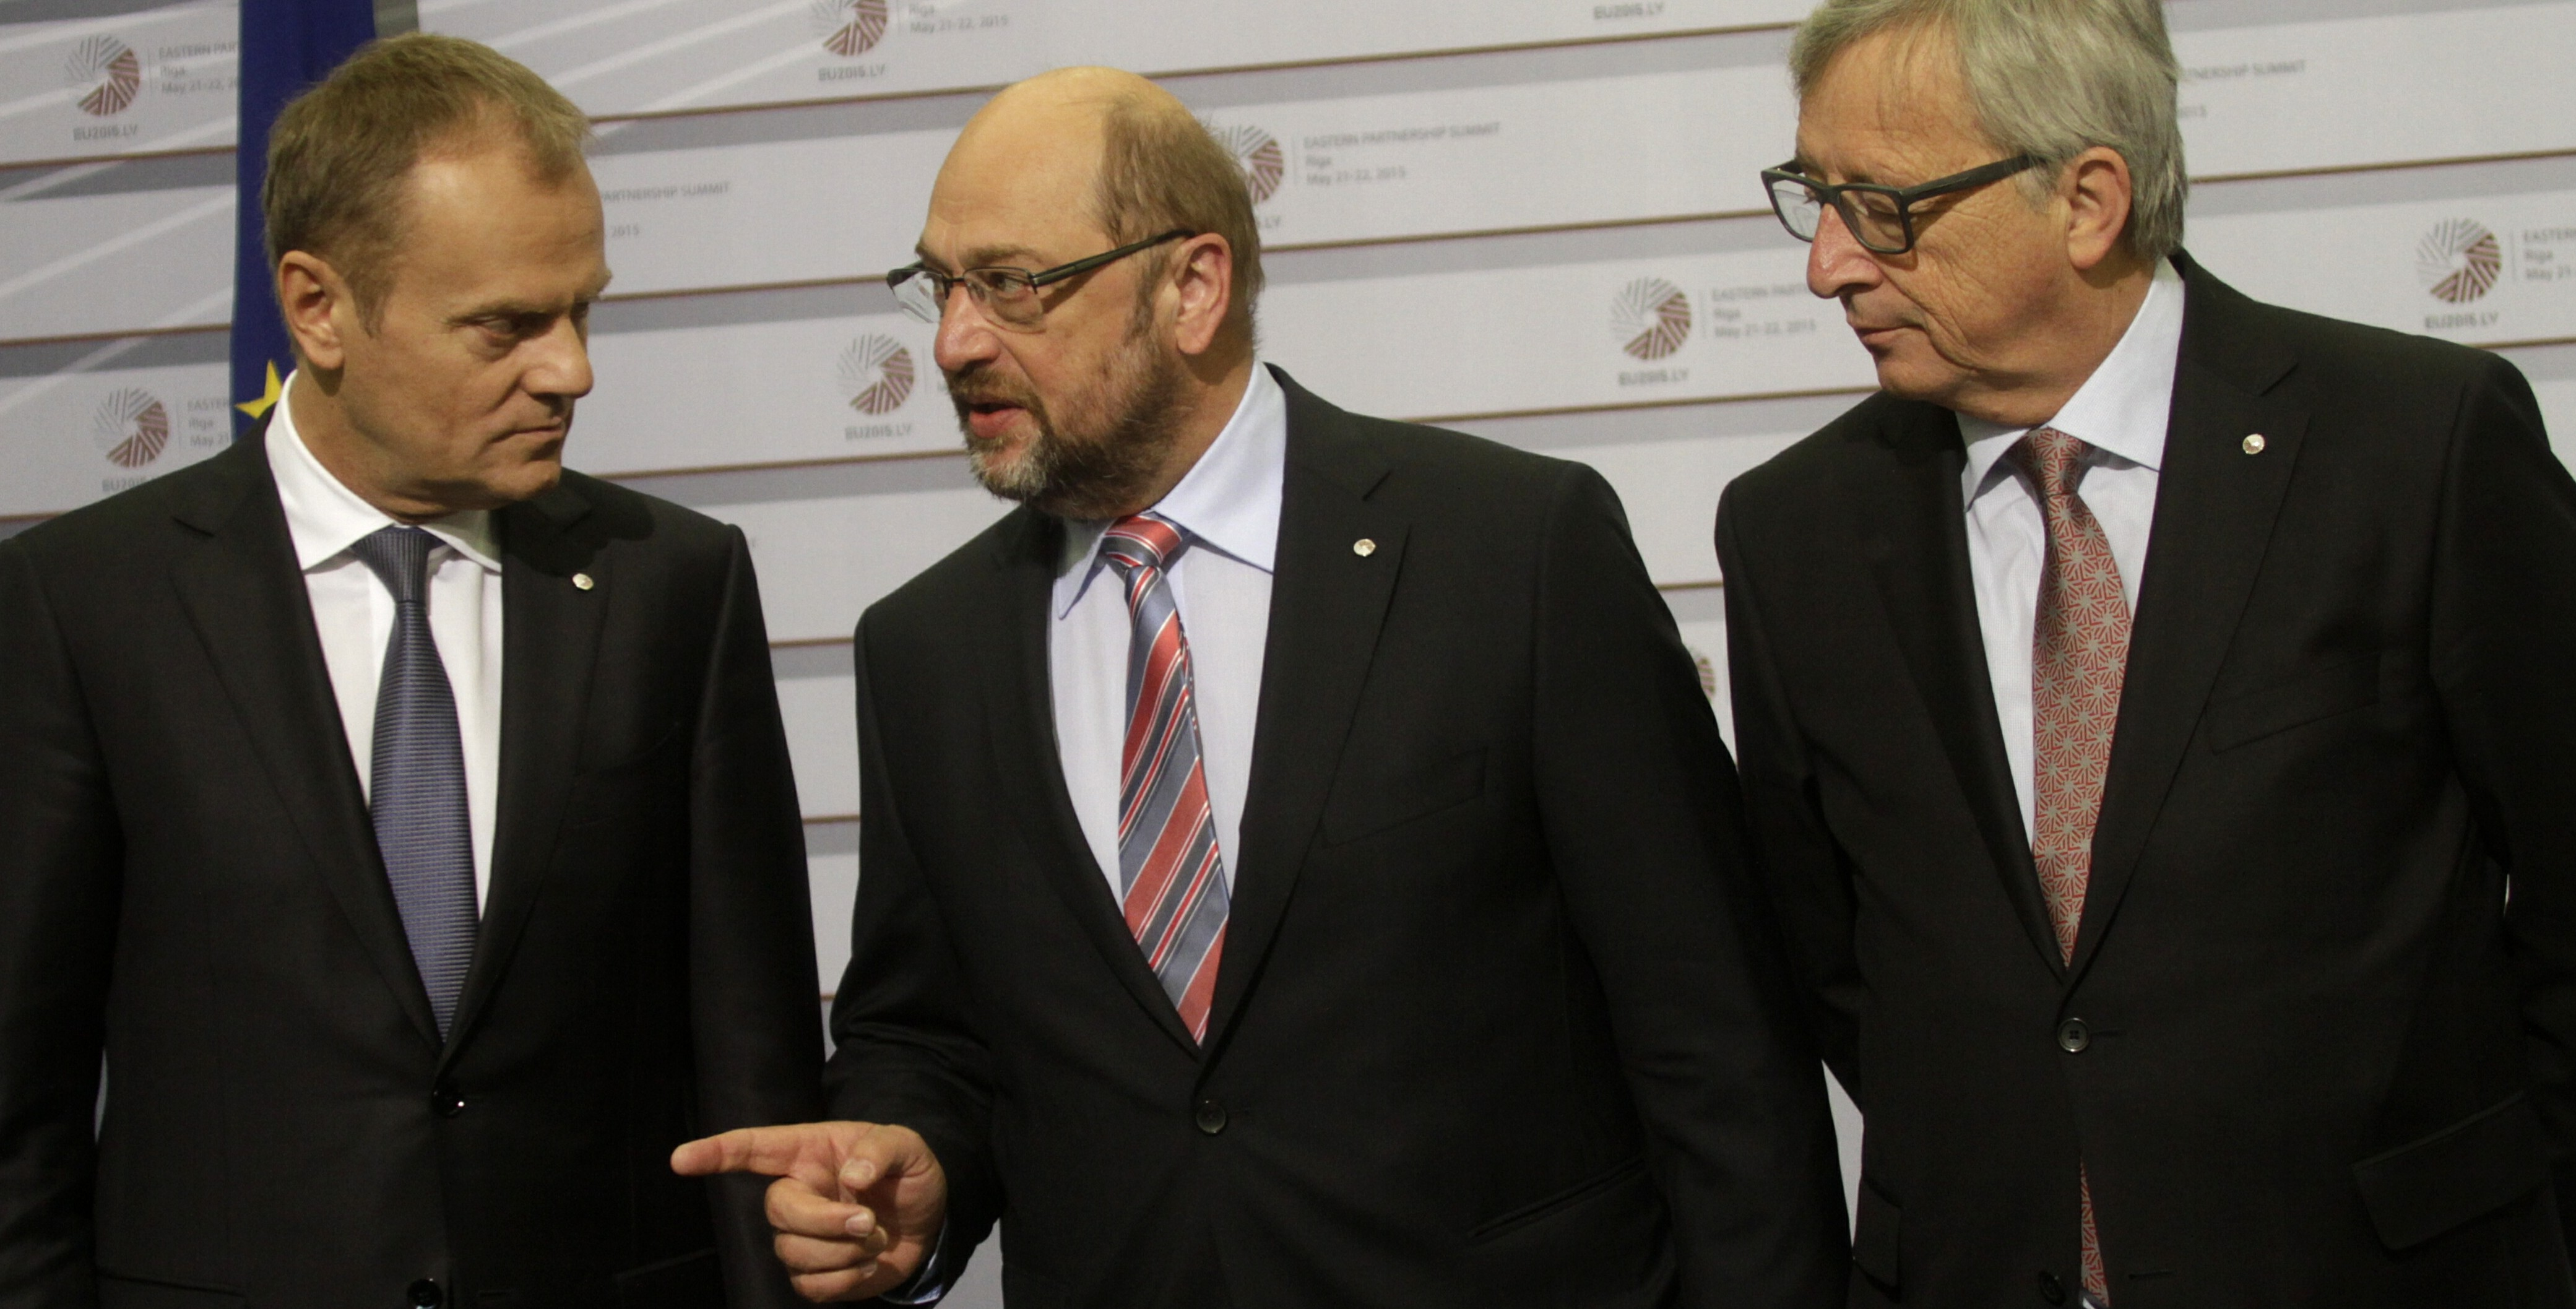 President of the European Council Donald Tusk (L-R), President of the European Parliament Martin Schulz and President of the European Commission Jean-Claude Juncker during arrivals at Eastern Partnership Summit in Riga, Latvia, 22 May 2015.